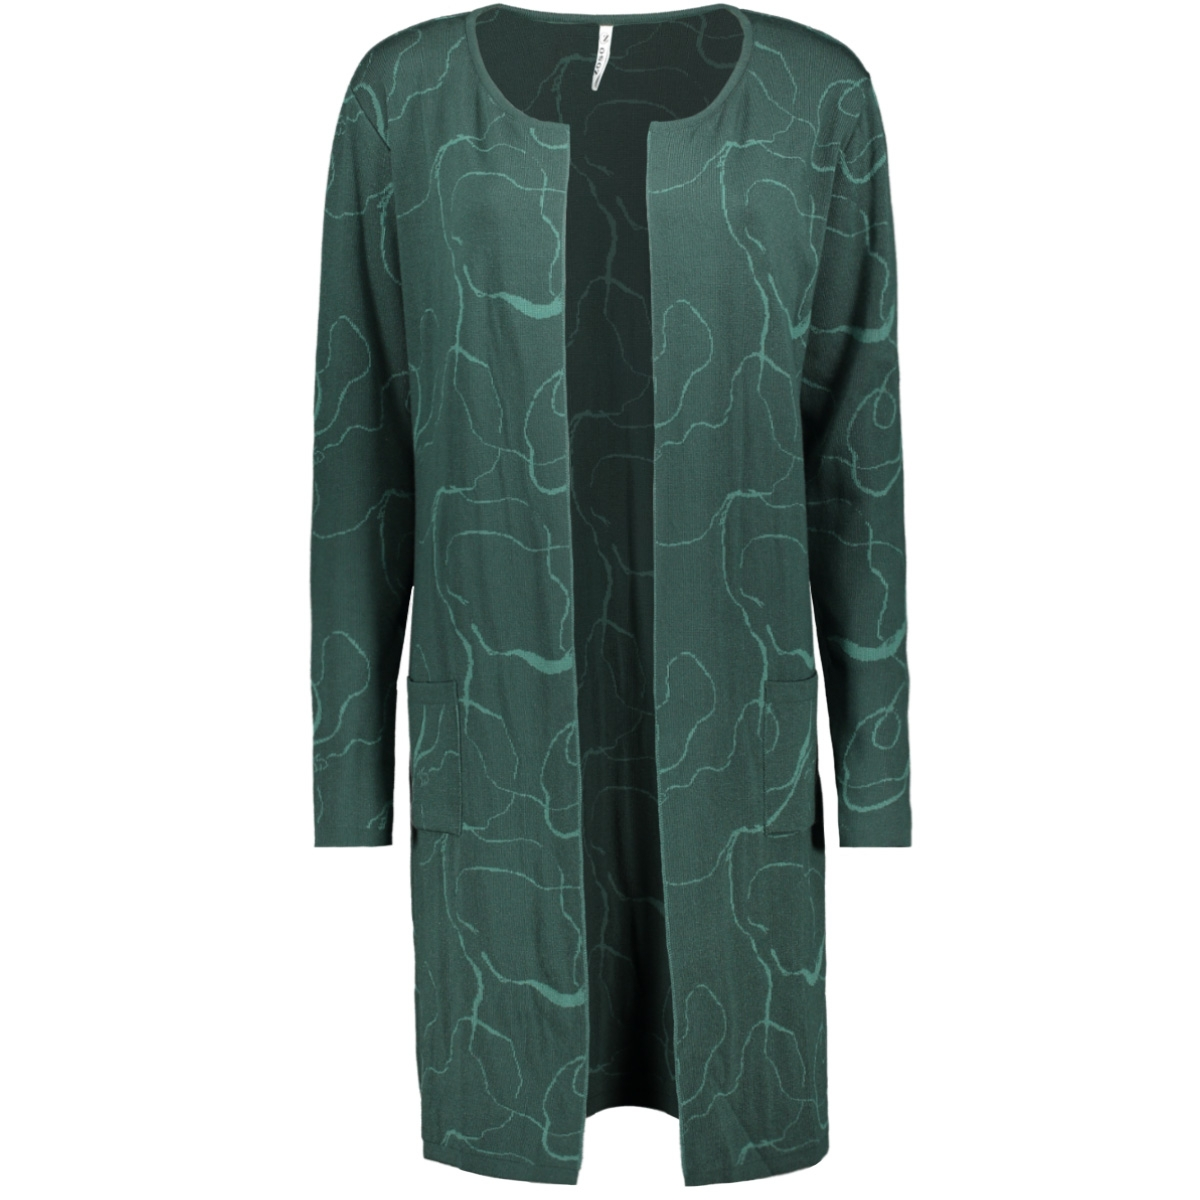 fossa knitted cardigan 195 zoso vest forest/midgreen